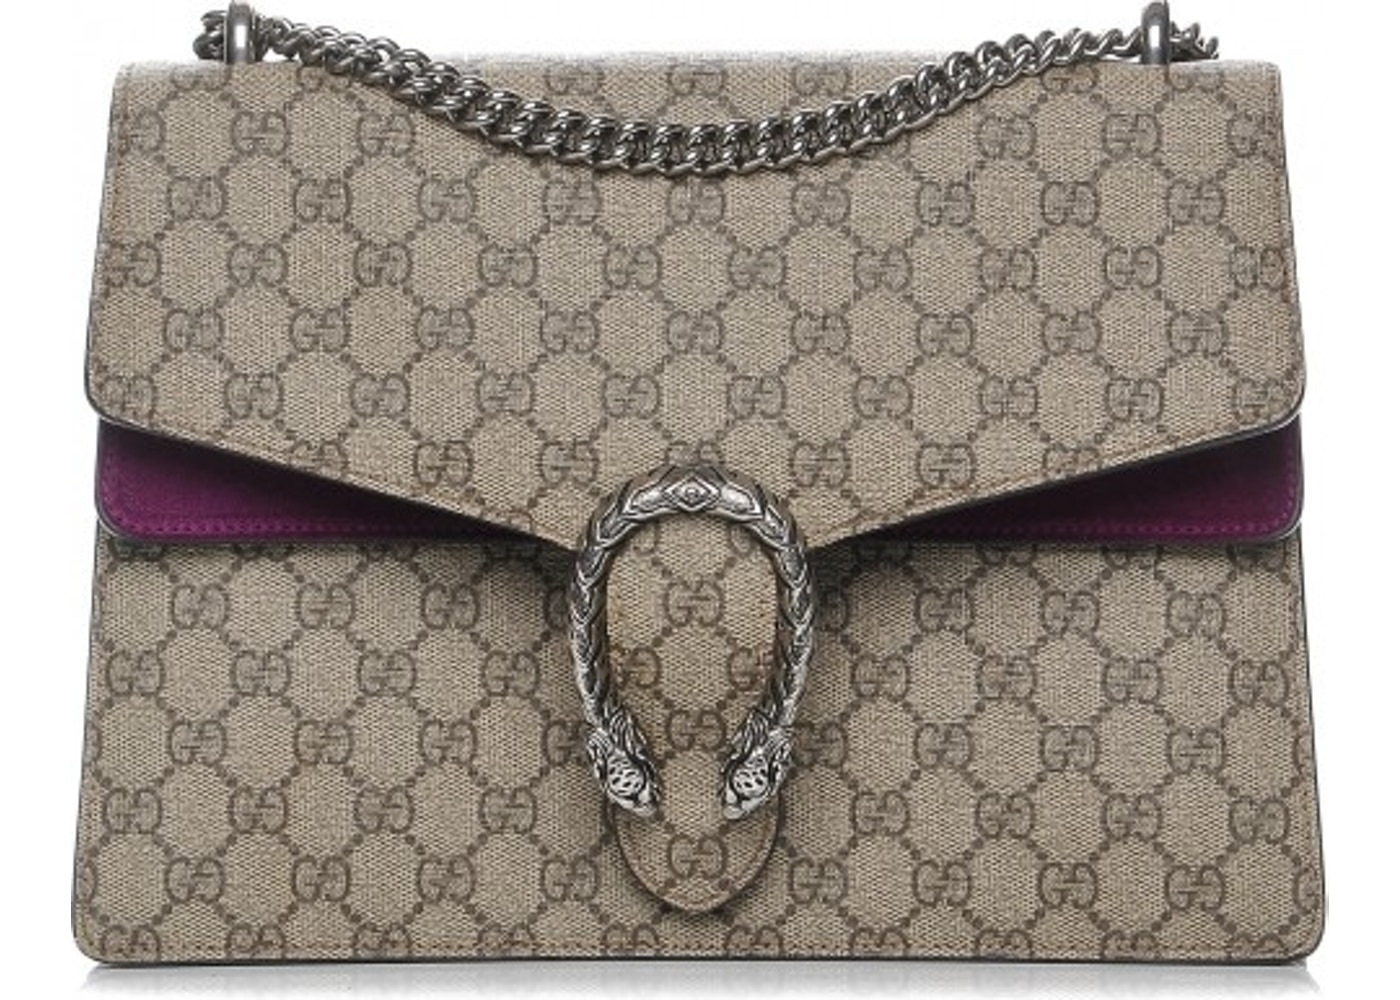 65373e706 Gucci Dionysus Shoulder Bag Monogram GG Supreme Medium Brown/Beige/Purple.  Monogram GG Supreme Medium Brown/Beige/Purple